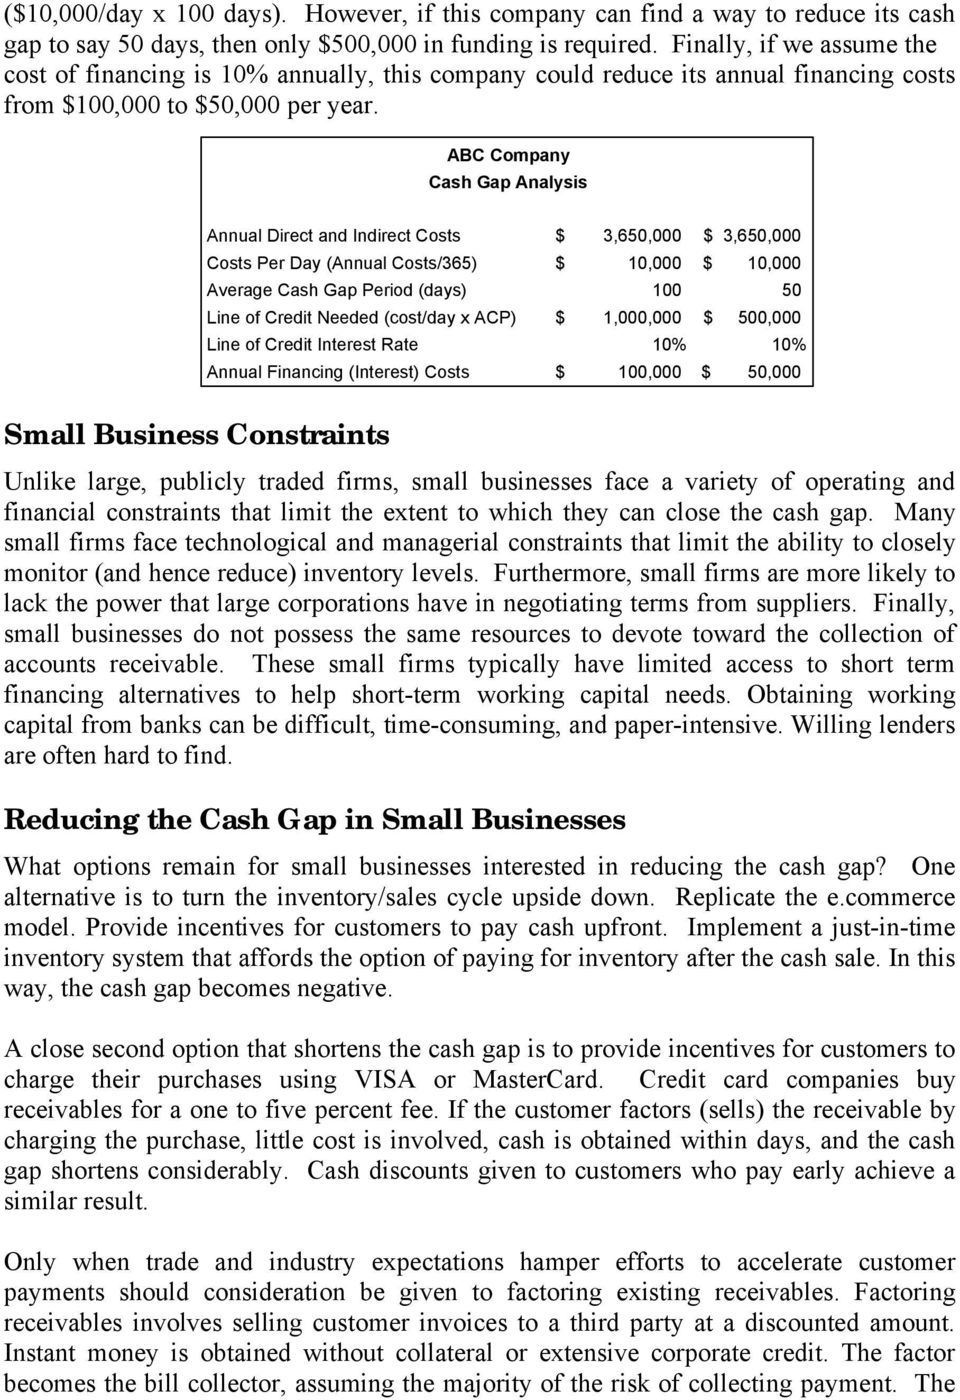 ABC Company Cash Gap Analysis Annual Direct and Indirect Costs $ 3,650,000 $ 3,650,000 Costs Per Day (Annual Costs/365) $ 10,000 $ 10,000 Average Cash Gap Period (days) 100 50 Line of Credit Needed